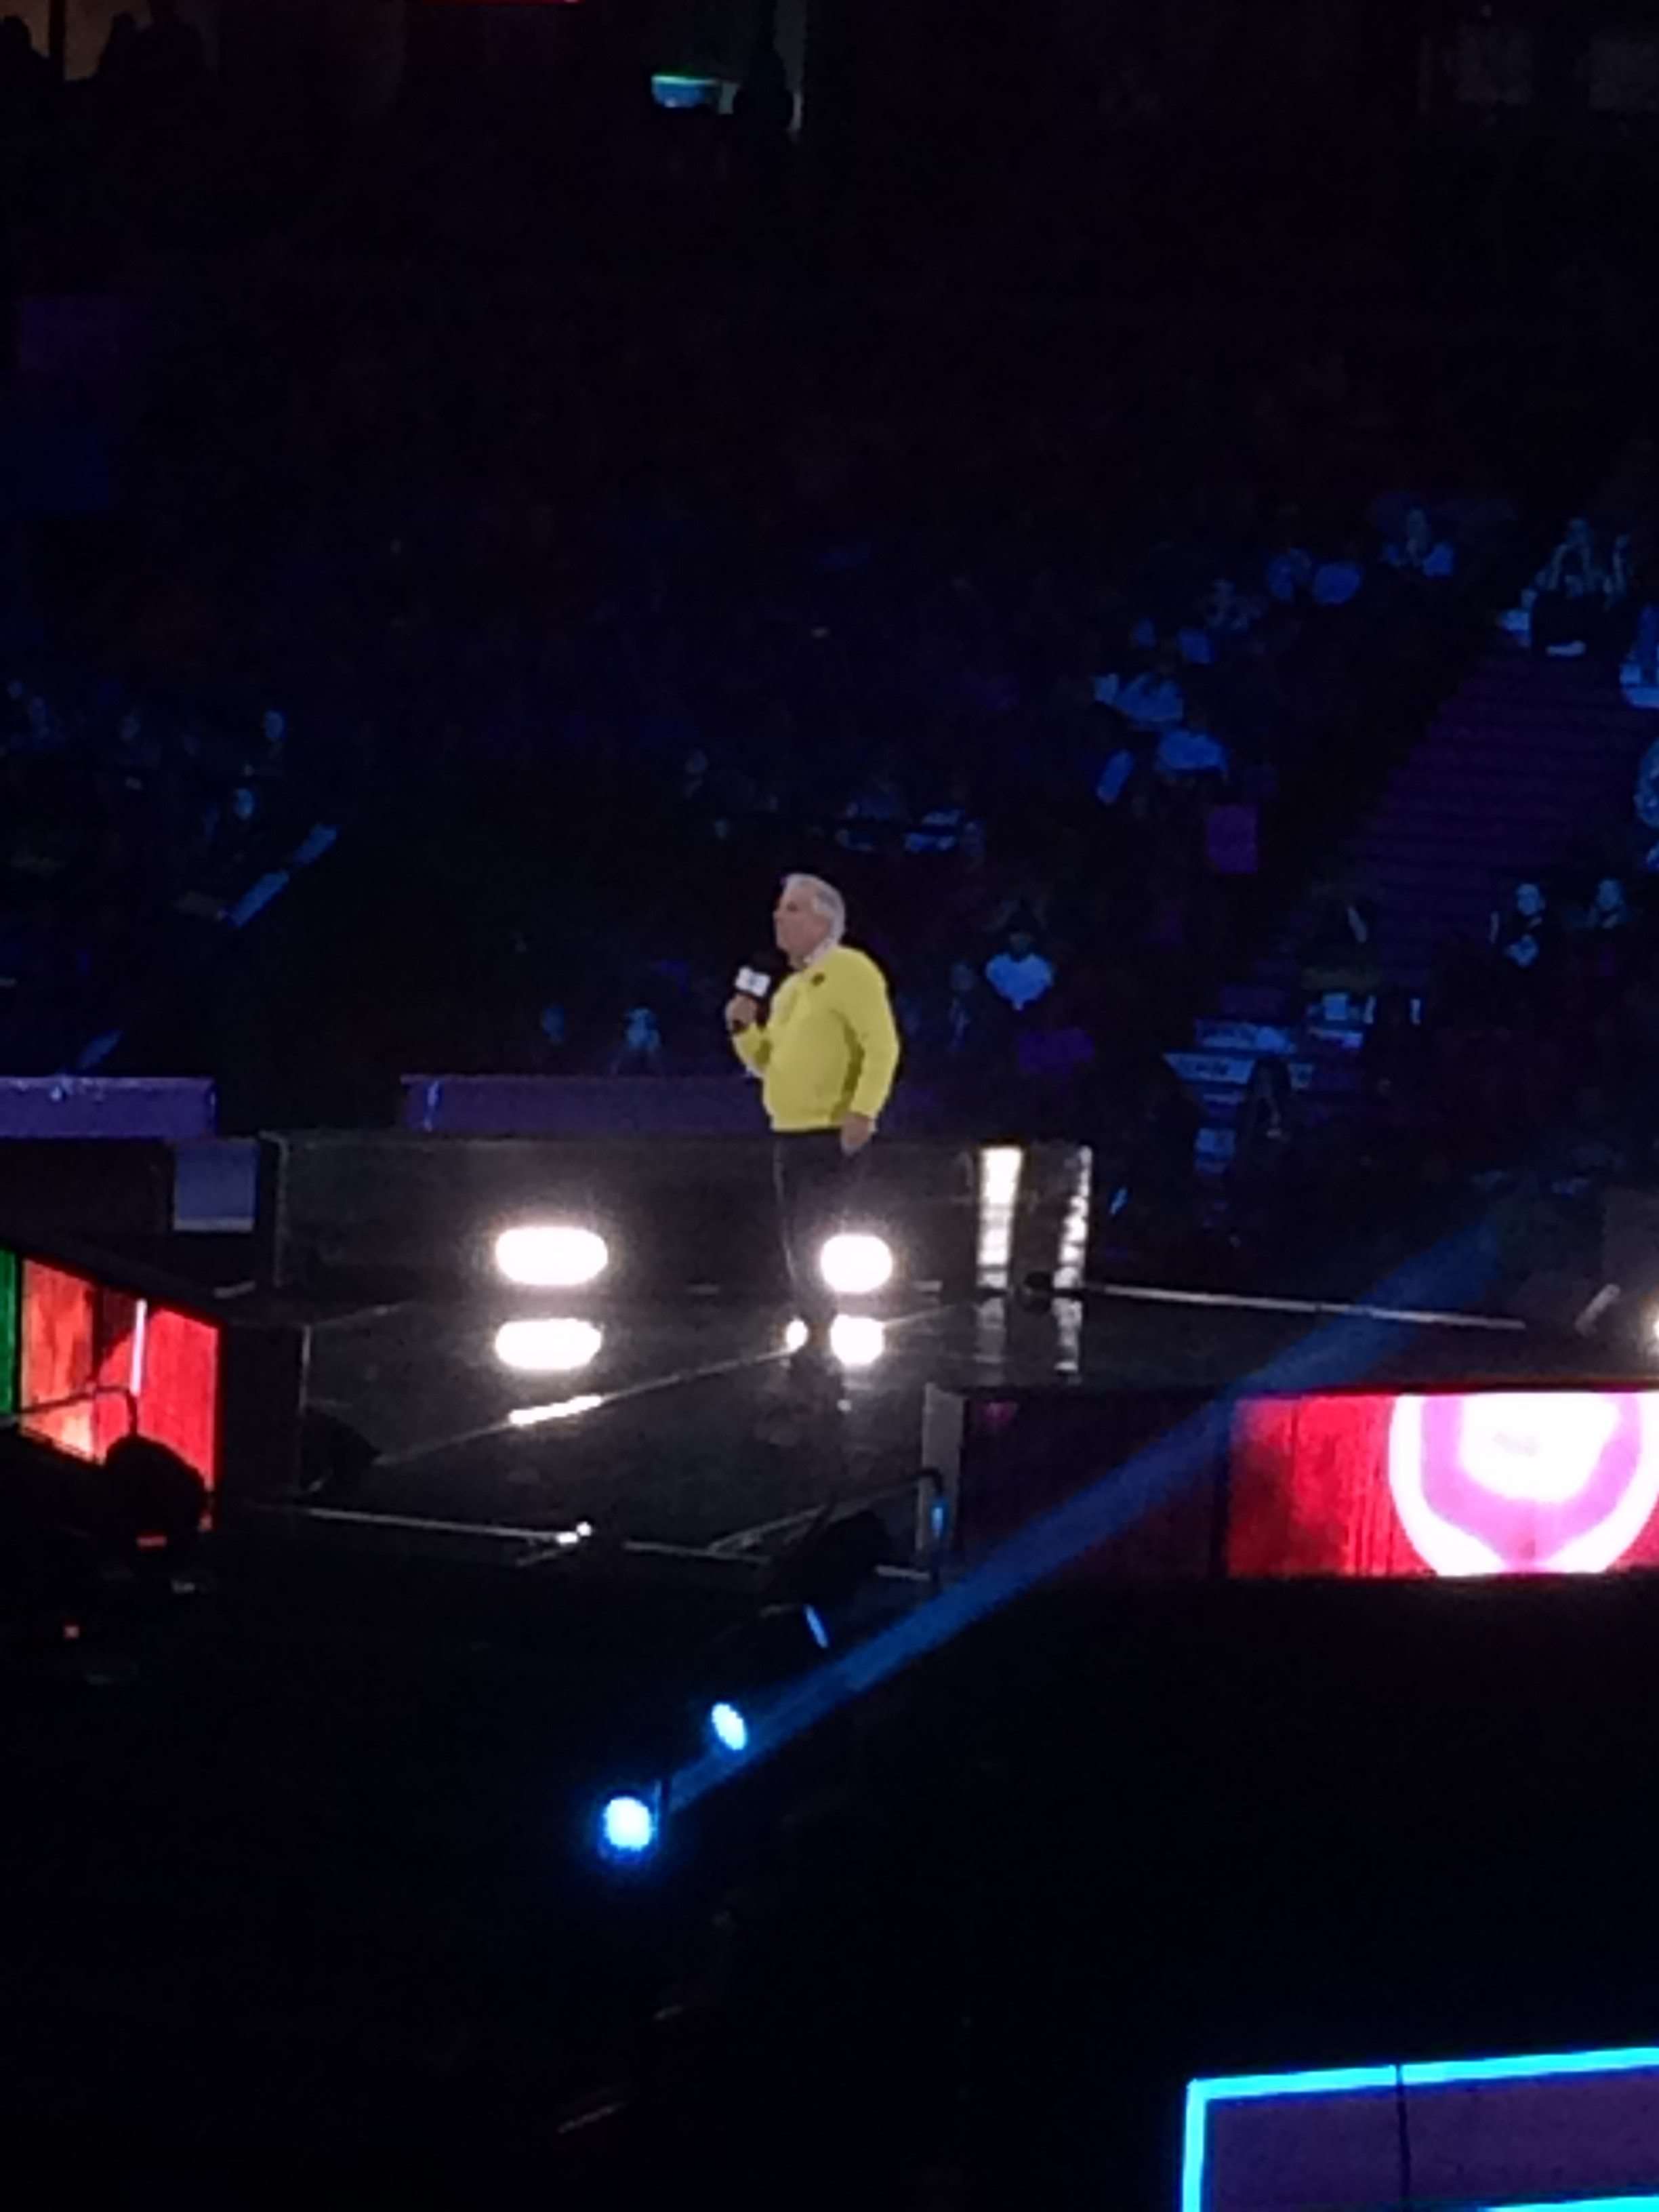 Actor Henry Winkler, better known to many as The Fonz from the television series Happy Days, takes the stage at WE Day. Photo by Leah Eustace, Ottawa Magazine.